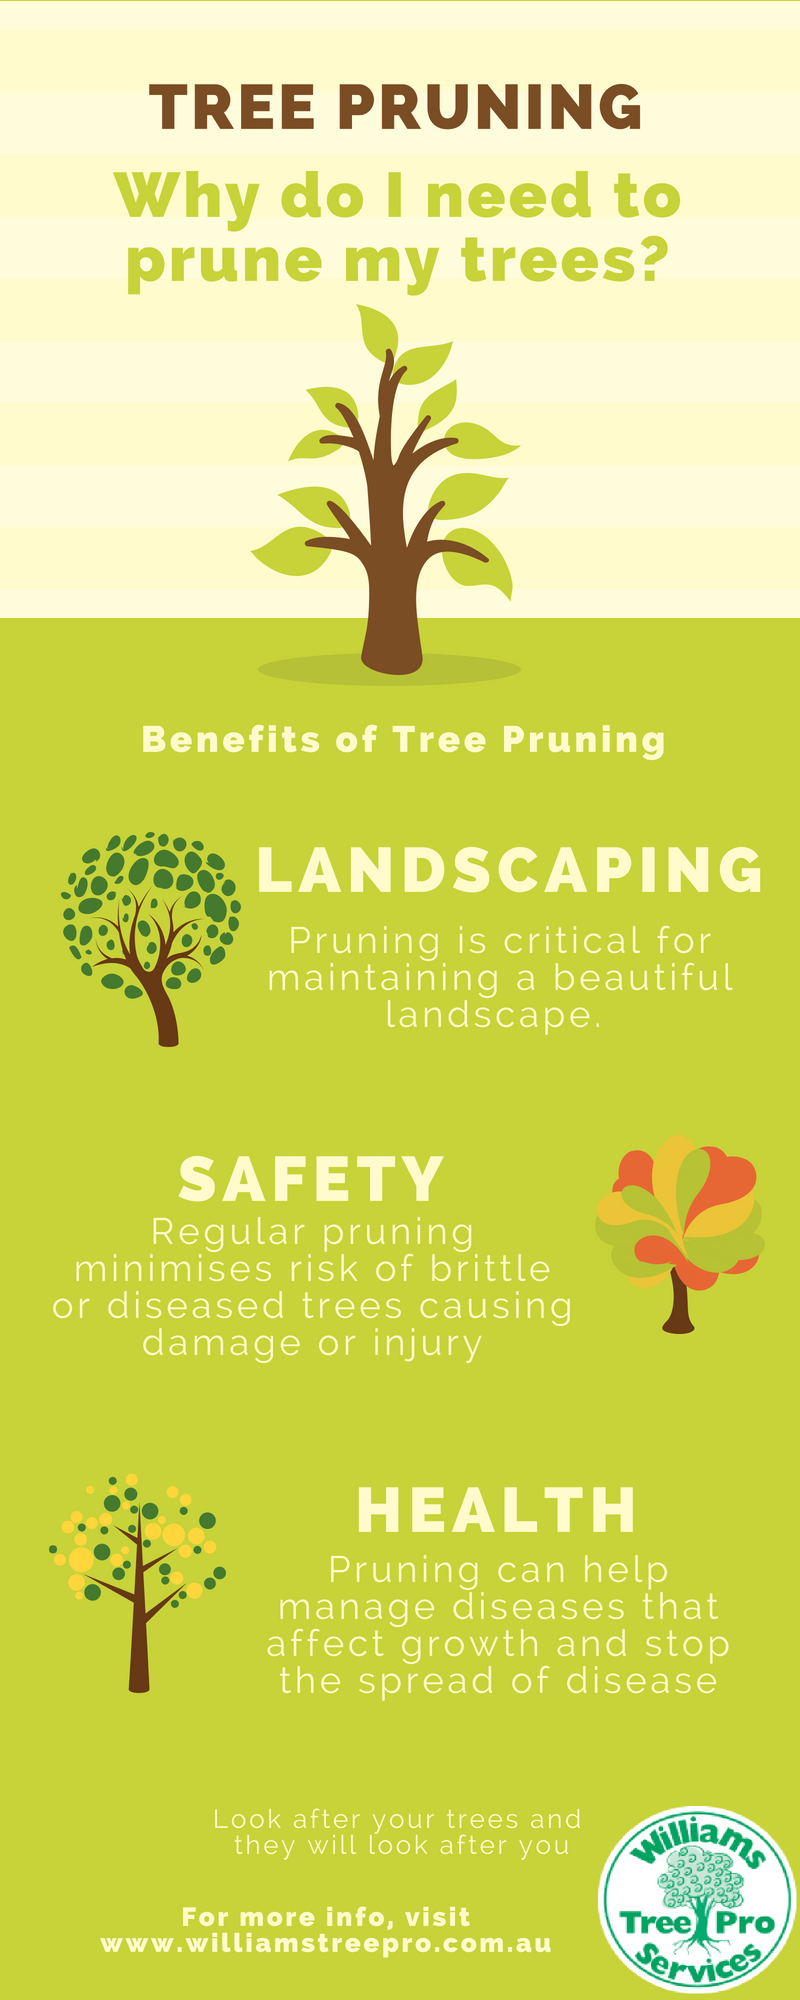 tree pruning infographic - williams tree pro services - benefits of tree pruning